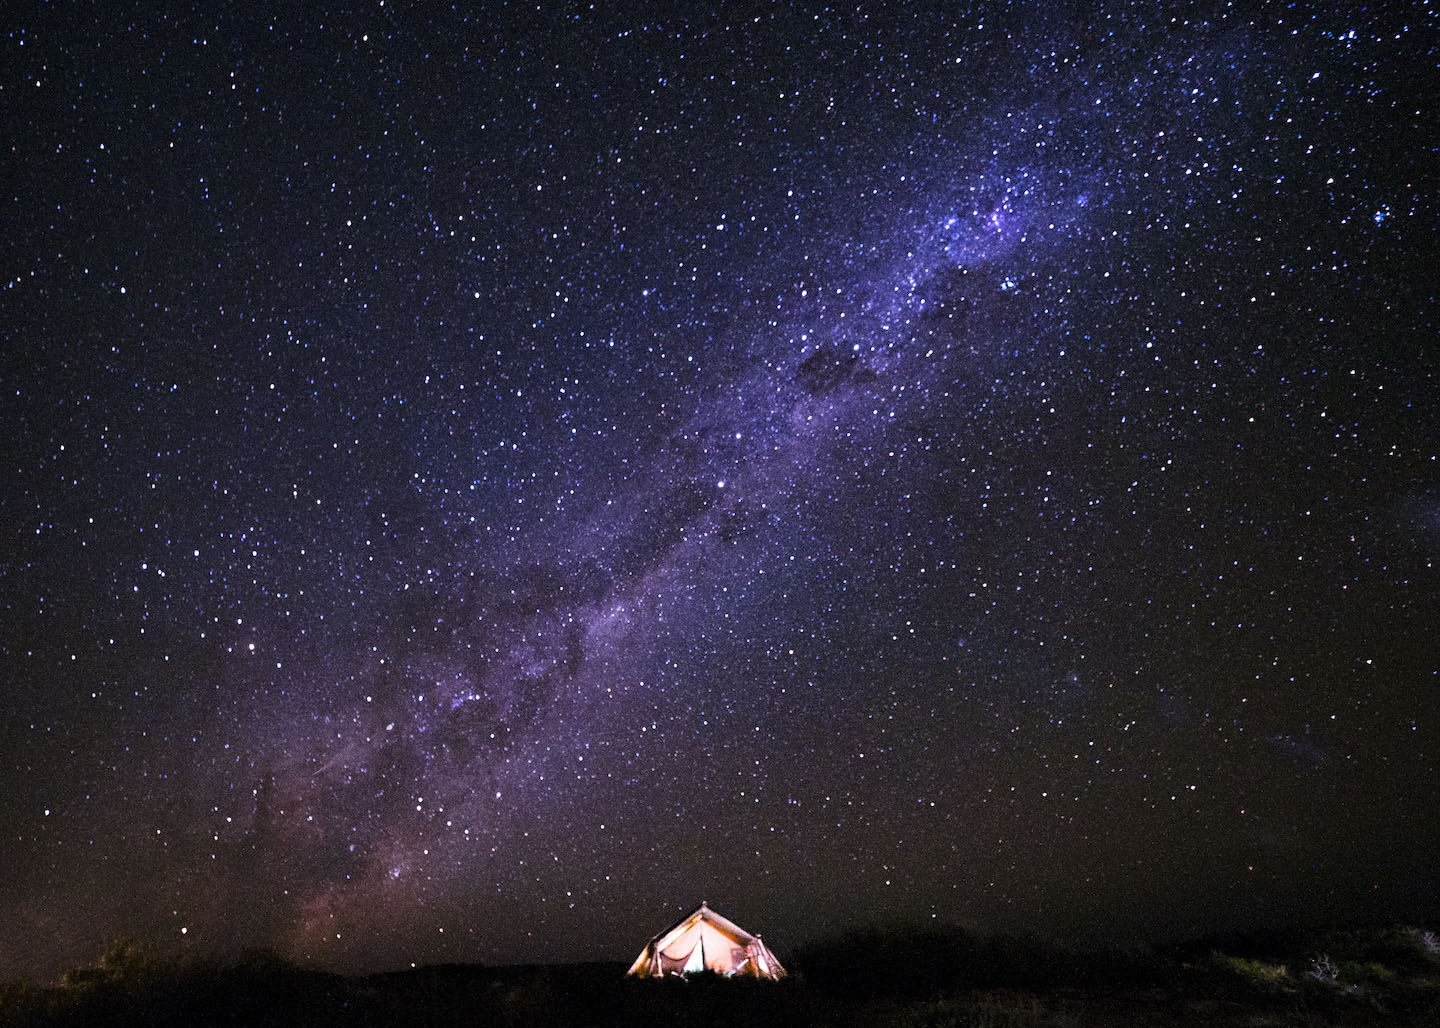 The-Milky-Way-at-Sal-Salis-Ningaloo-Reef_credit-Lauren-Bath.jpg